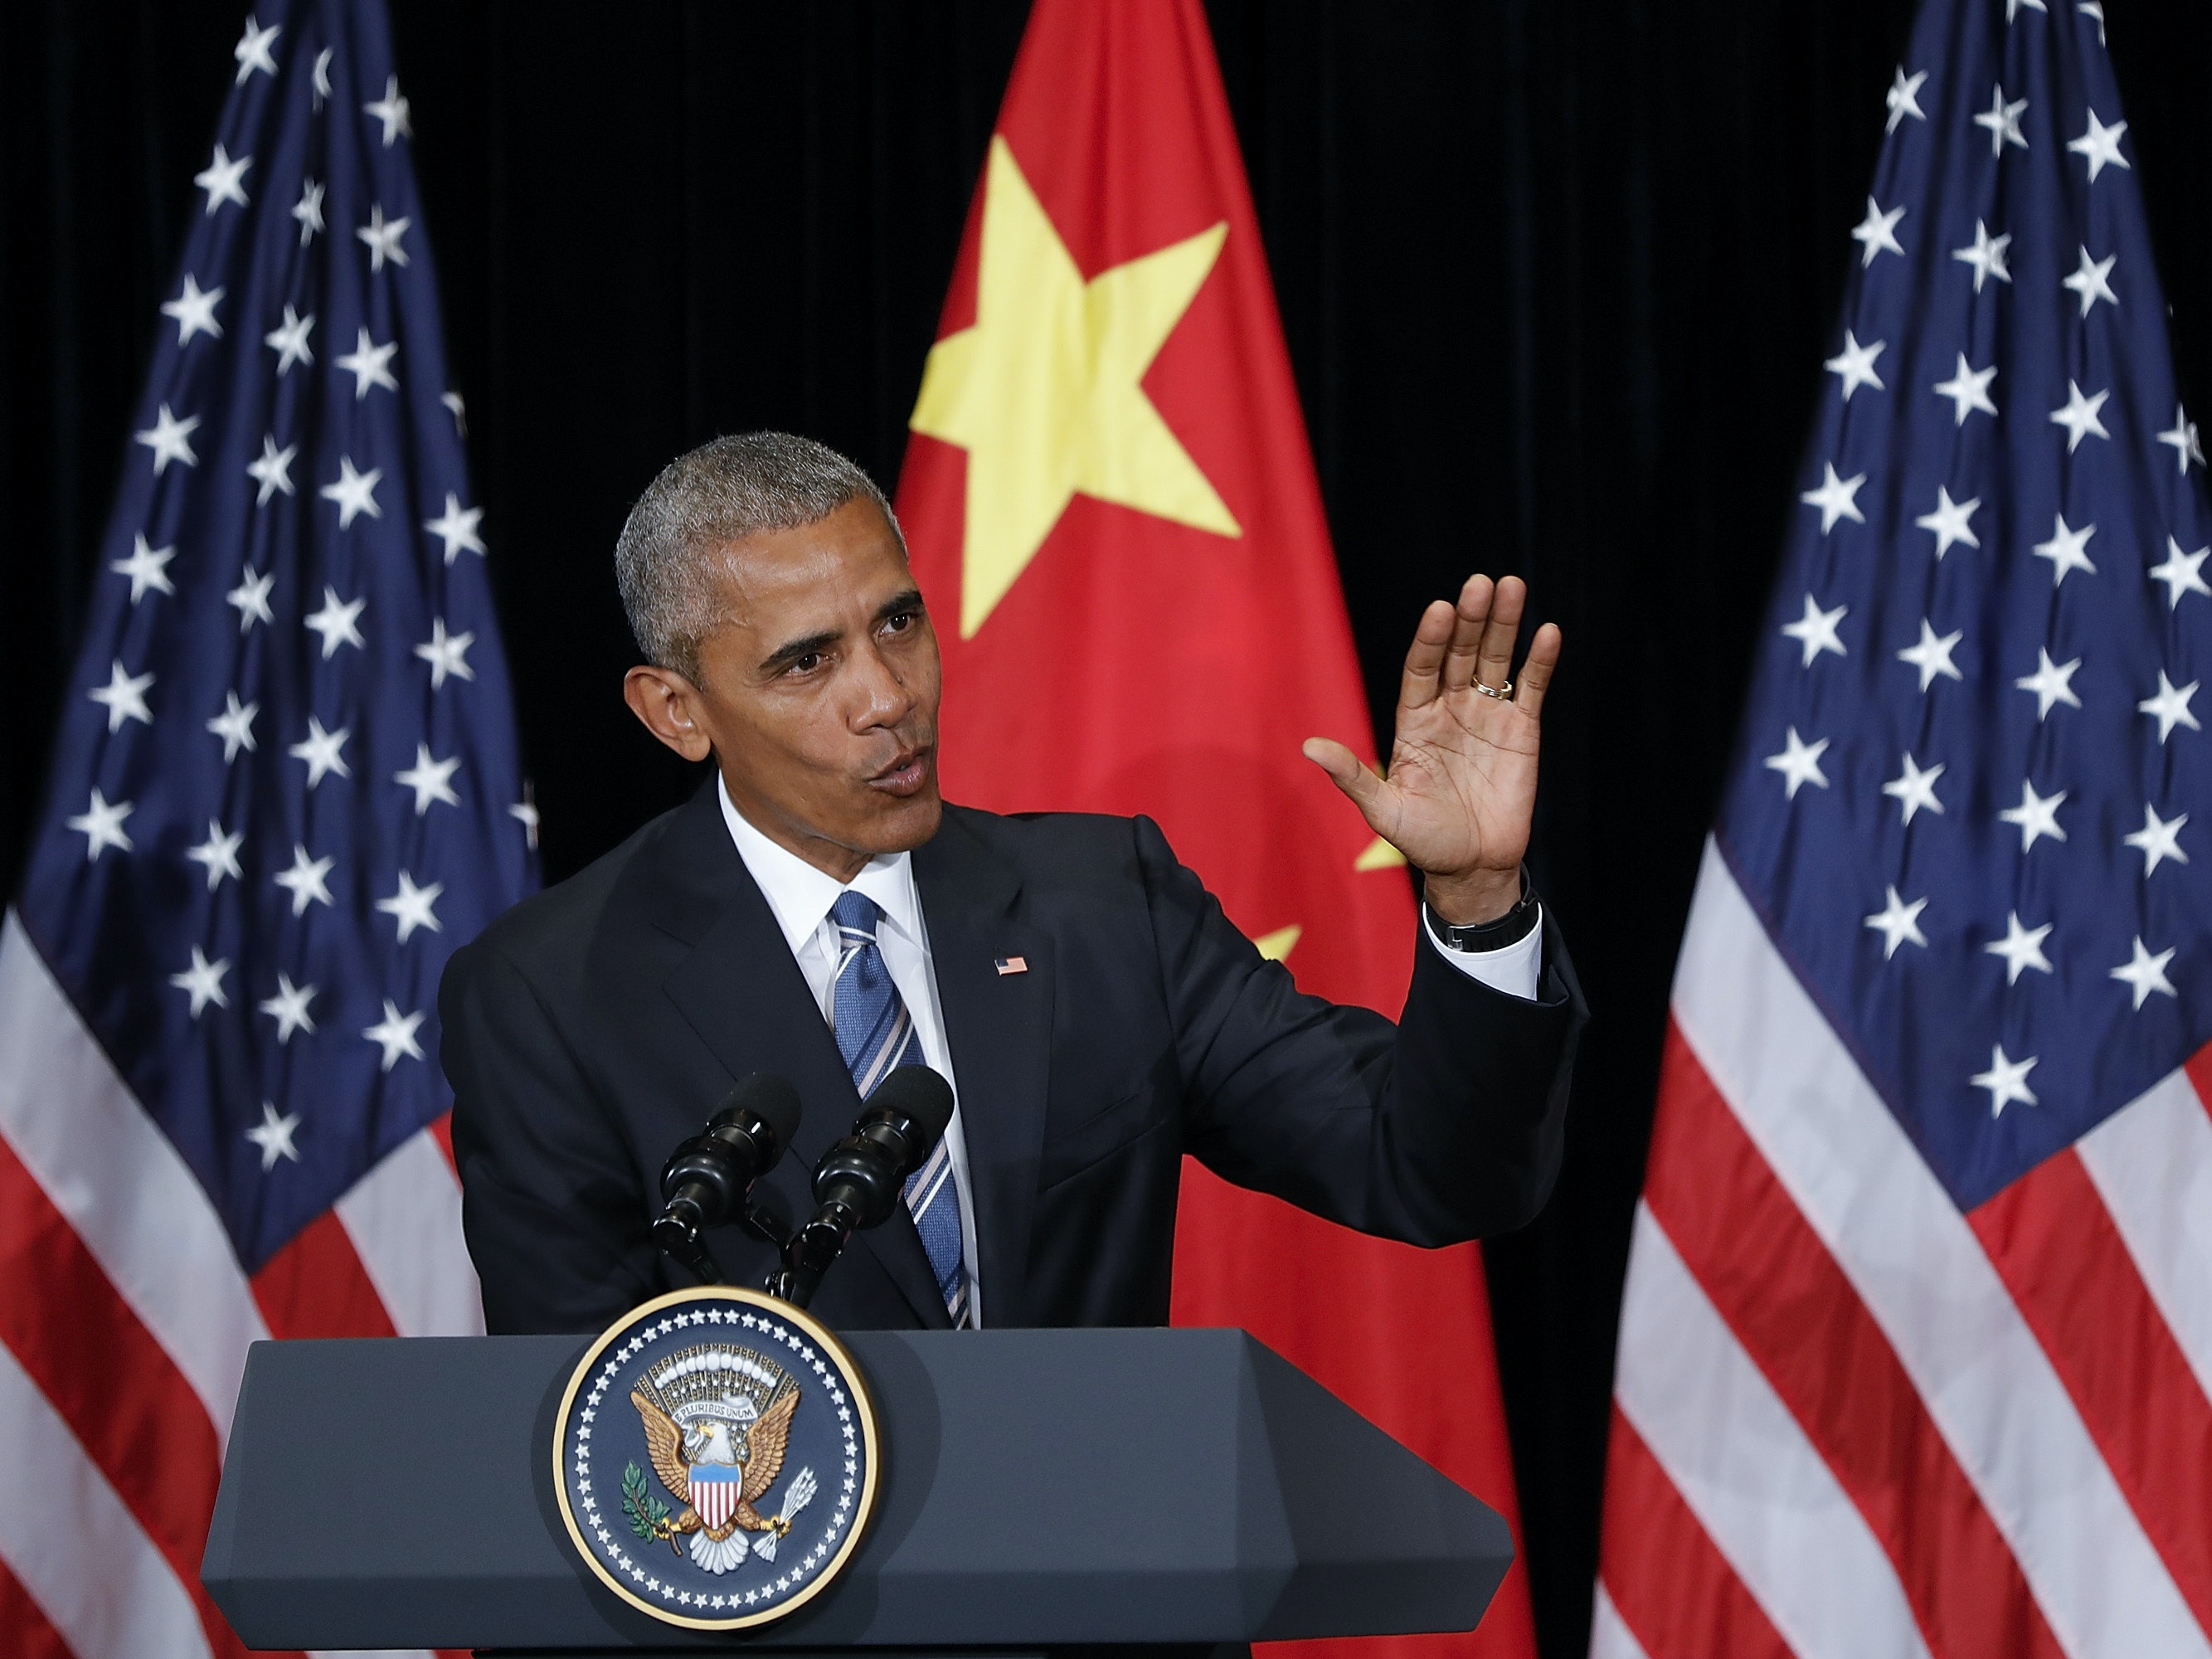 President Barack Obama addressed rising cyber security threats at the G-20 Summit on Monday.